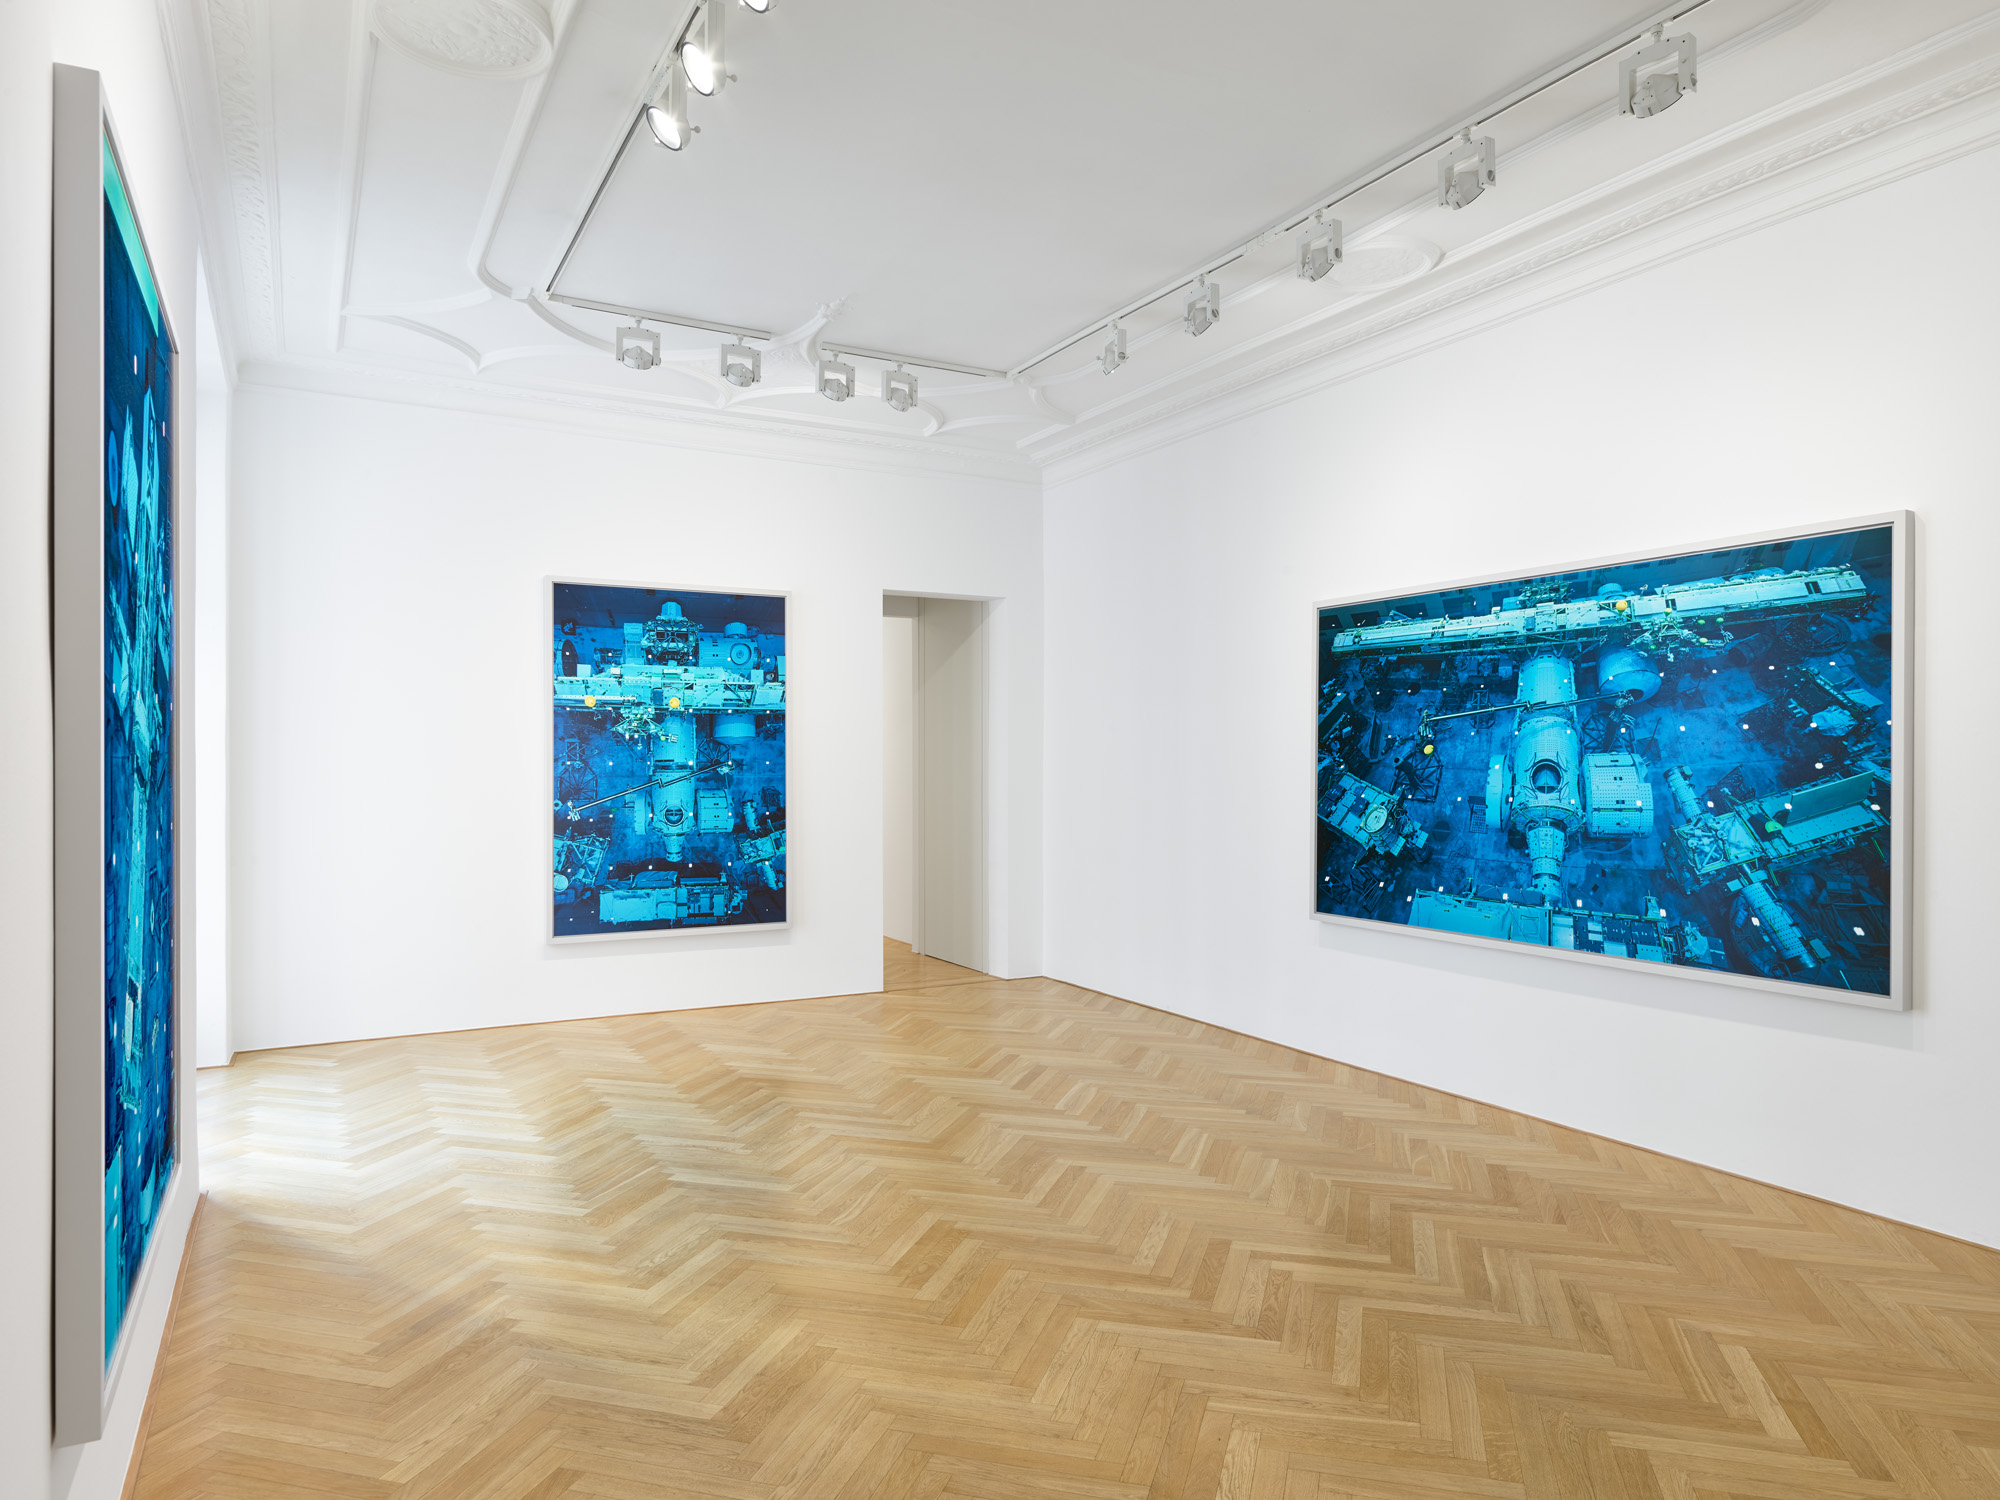 Installation view, Thomas Struth, GMH, Bleibtreustrasse / photo: def image, Courtesy of the artist and Galerie Max Hetzler, Berlin | Paris | London